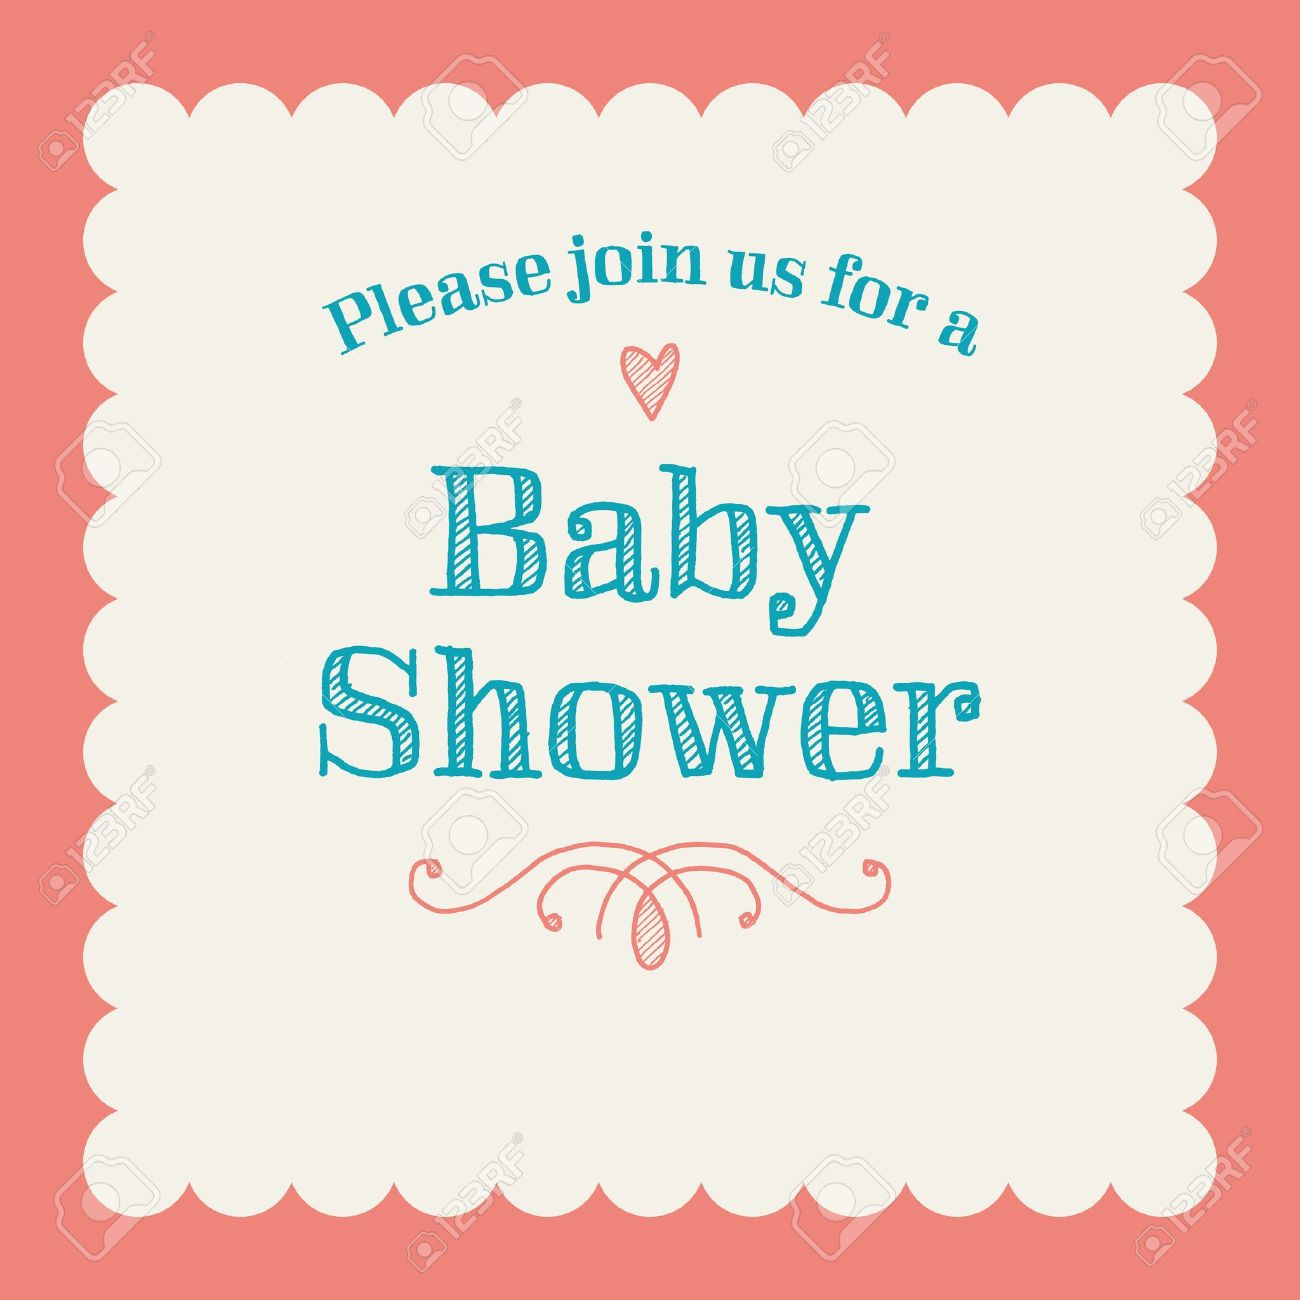 baby shower invitation card editable with type, font, ornaments, Baby shower invitations